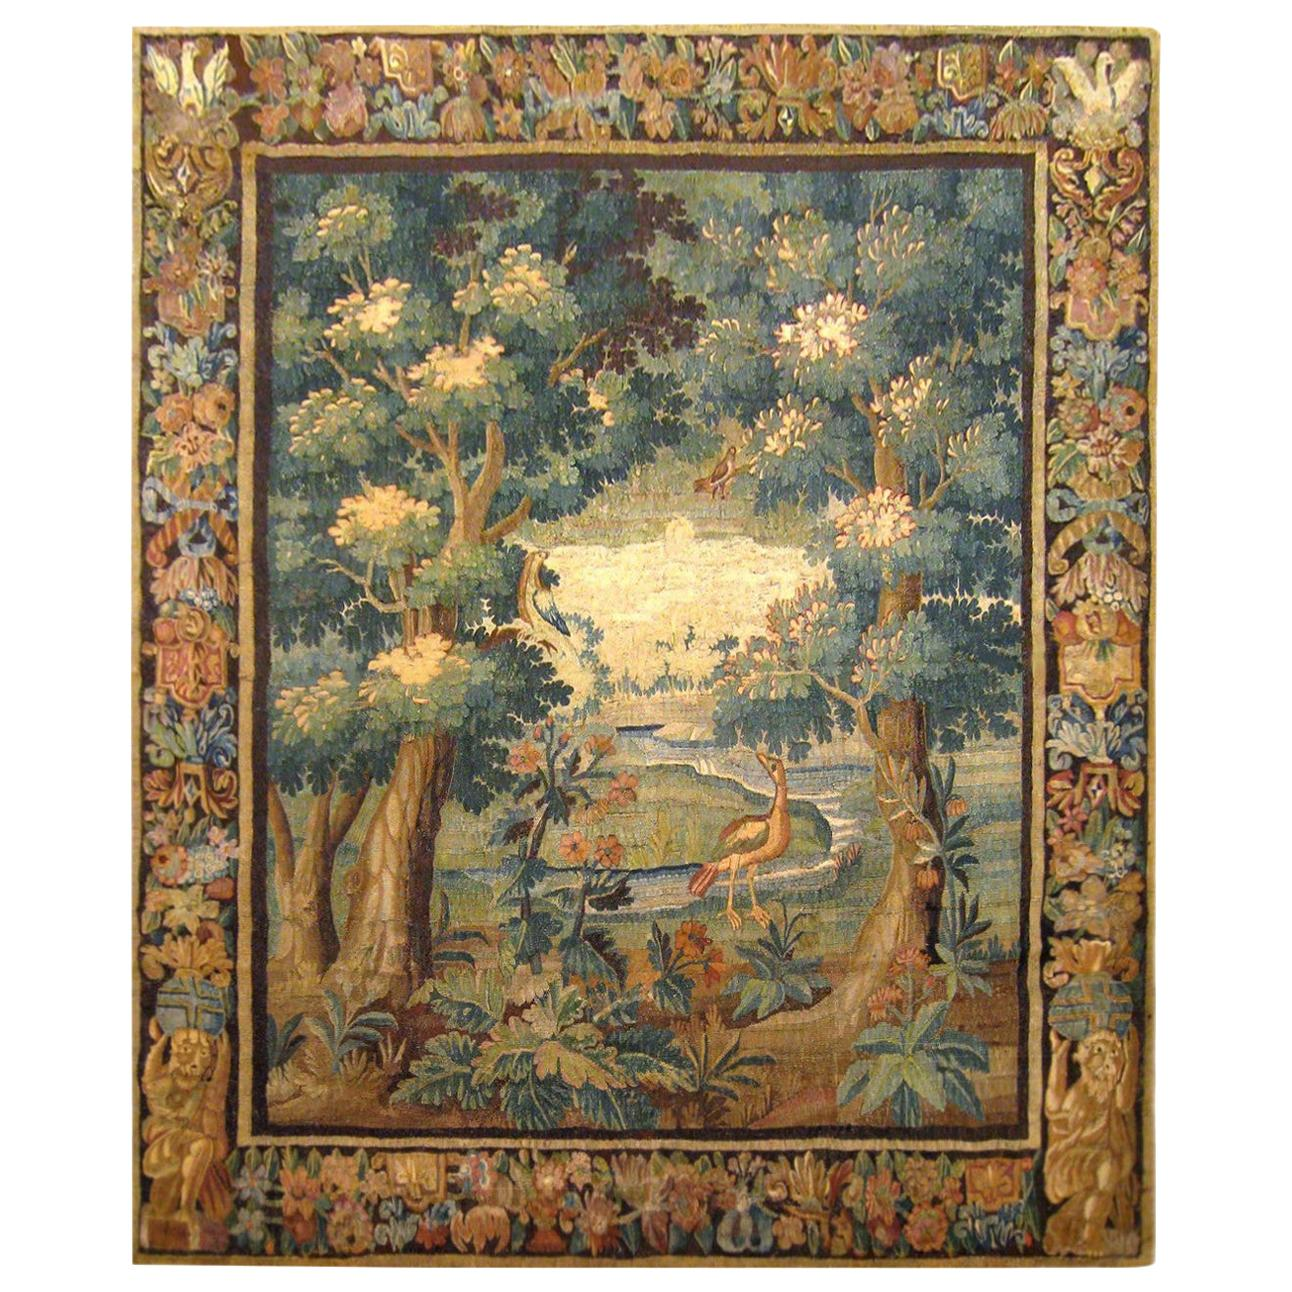 17th Century Flemish Verdure Landscape Tapestry, with an Exotic Bird by Lakeside